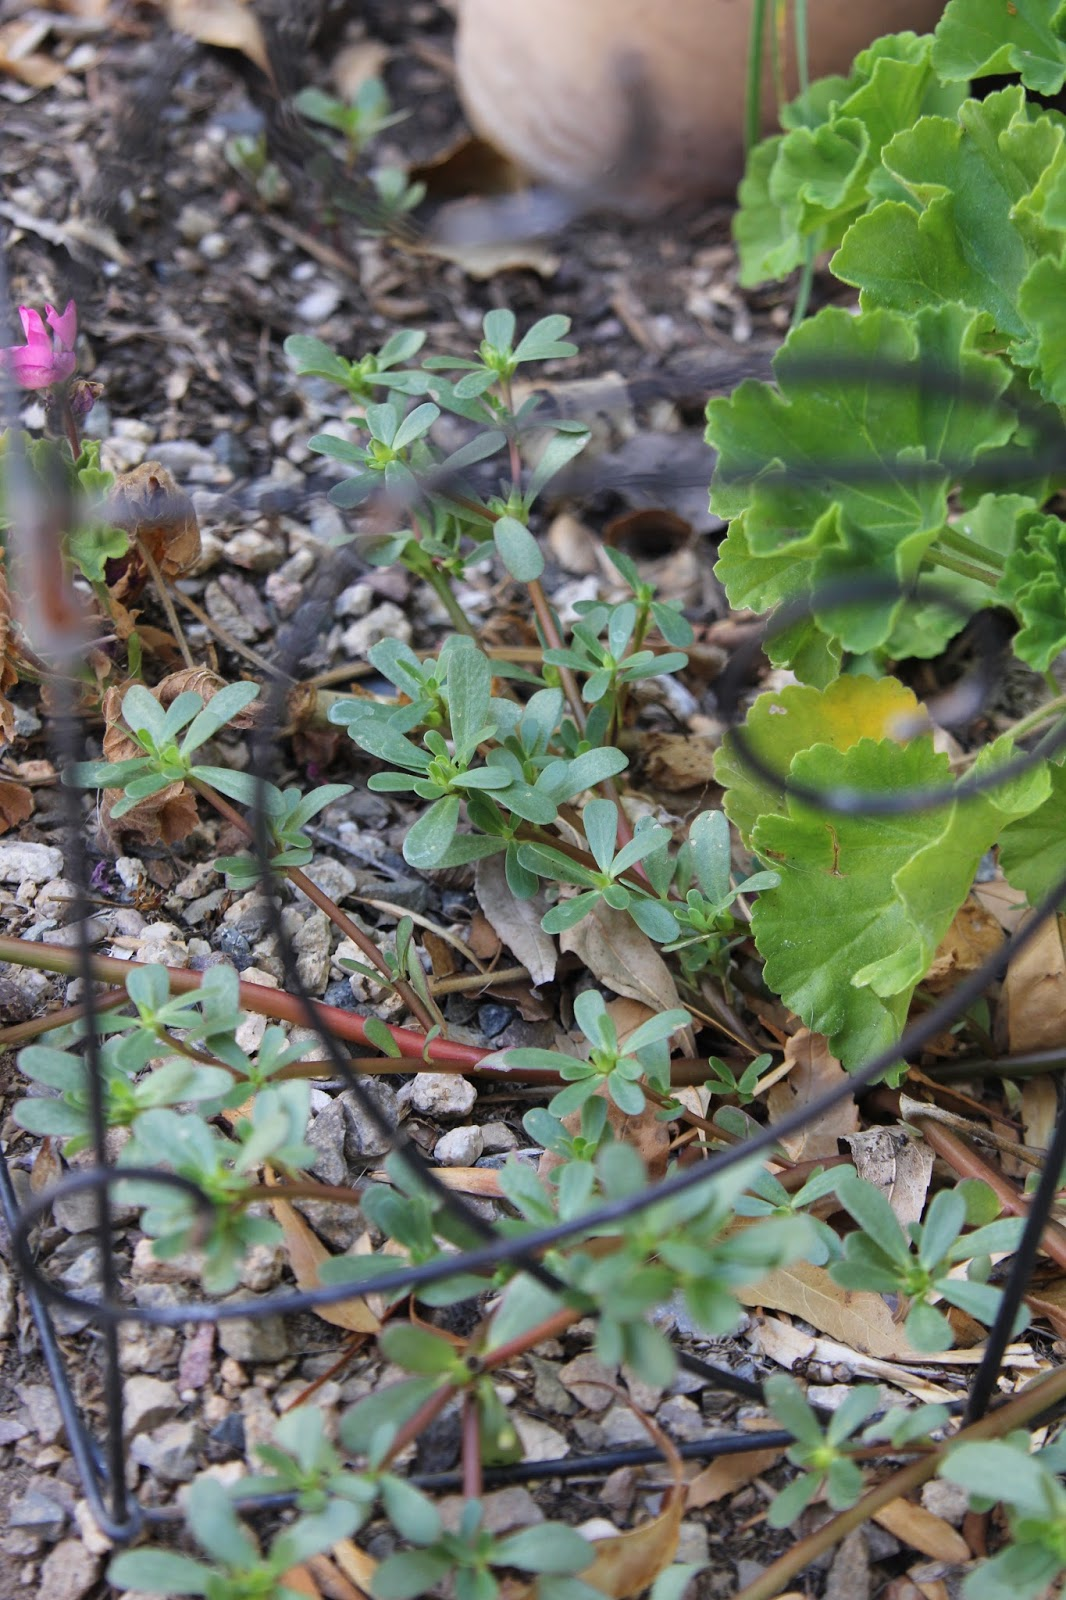 Growing Purslane How To Grow Edible Purslane In The Garden: To Market, To Market With San Diego Foodstuff